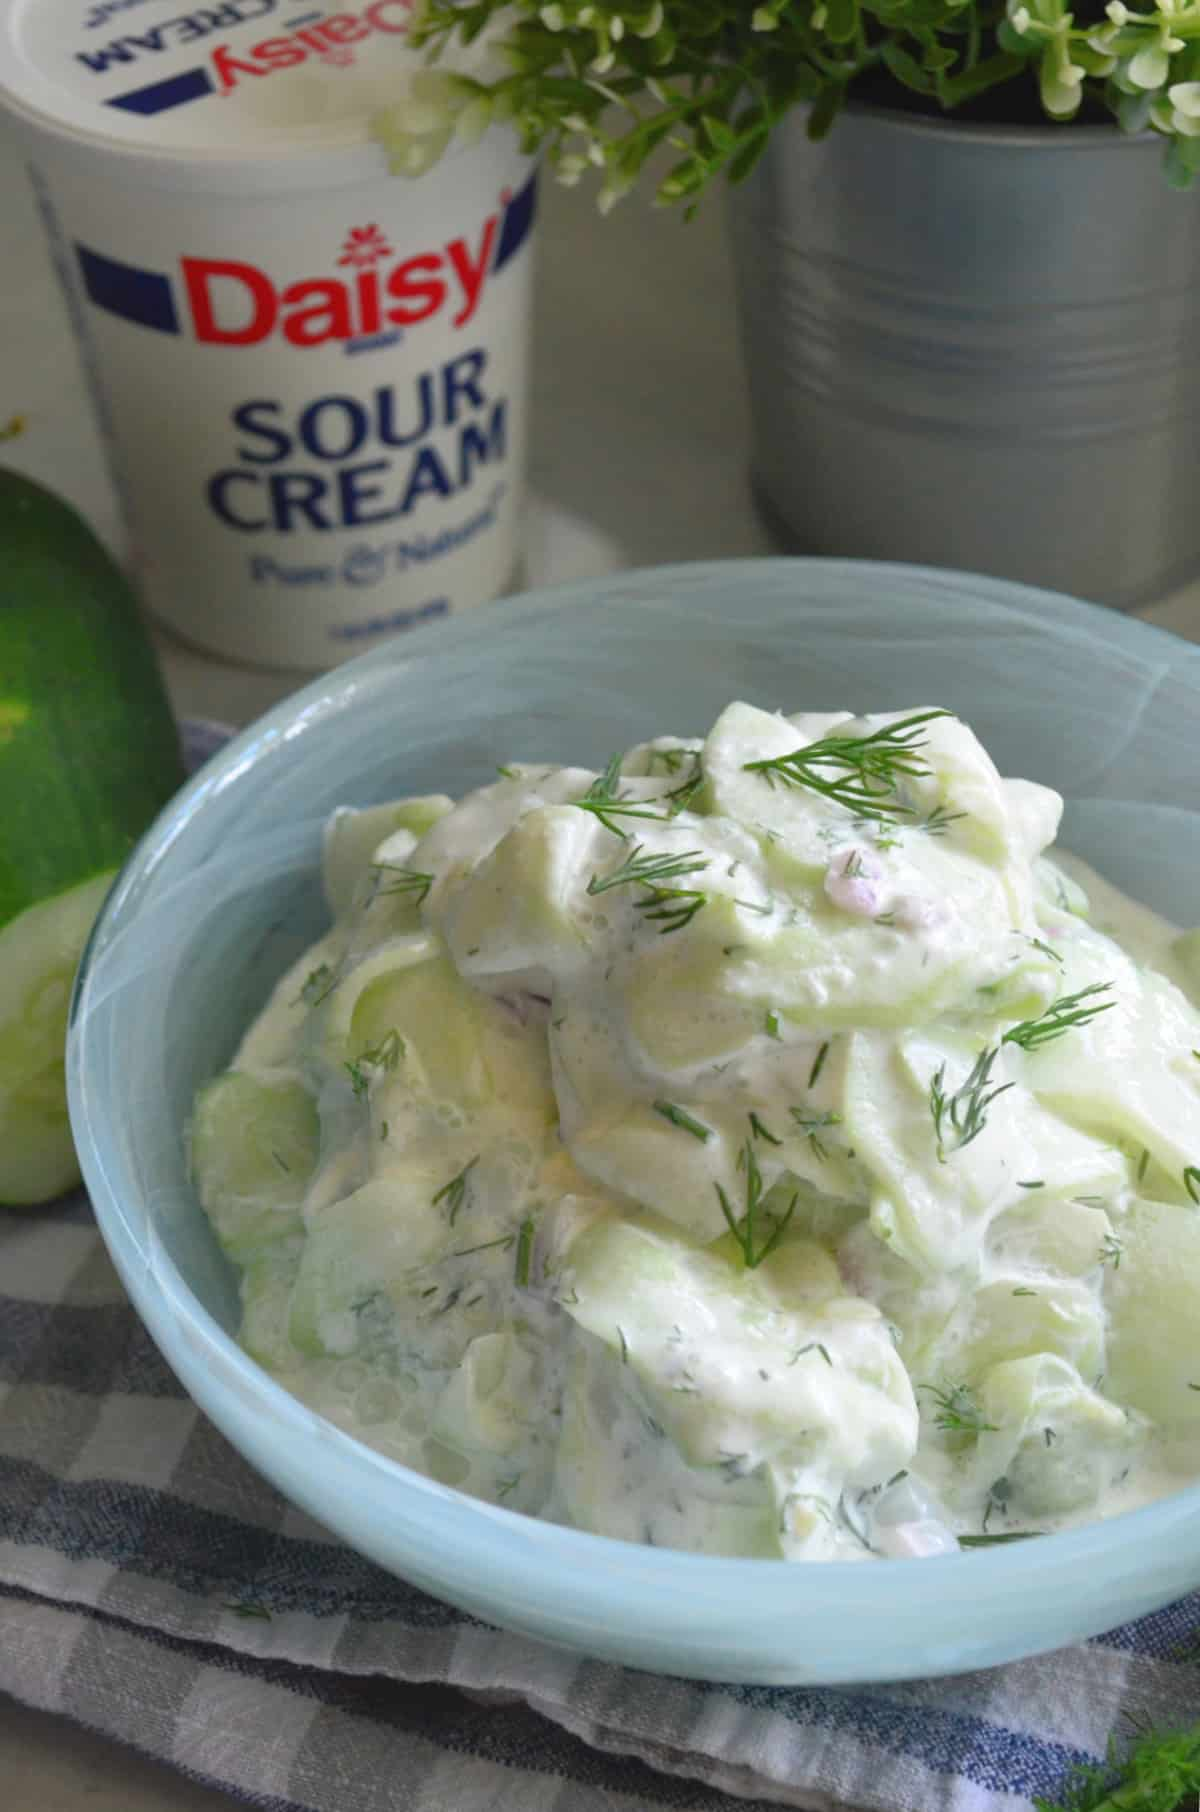 Close up of thinly sliced cucumbers with sour cream, fresh dill and red onion in blue bowl.